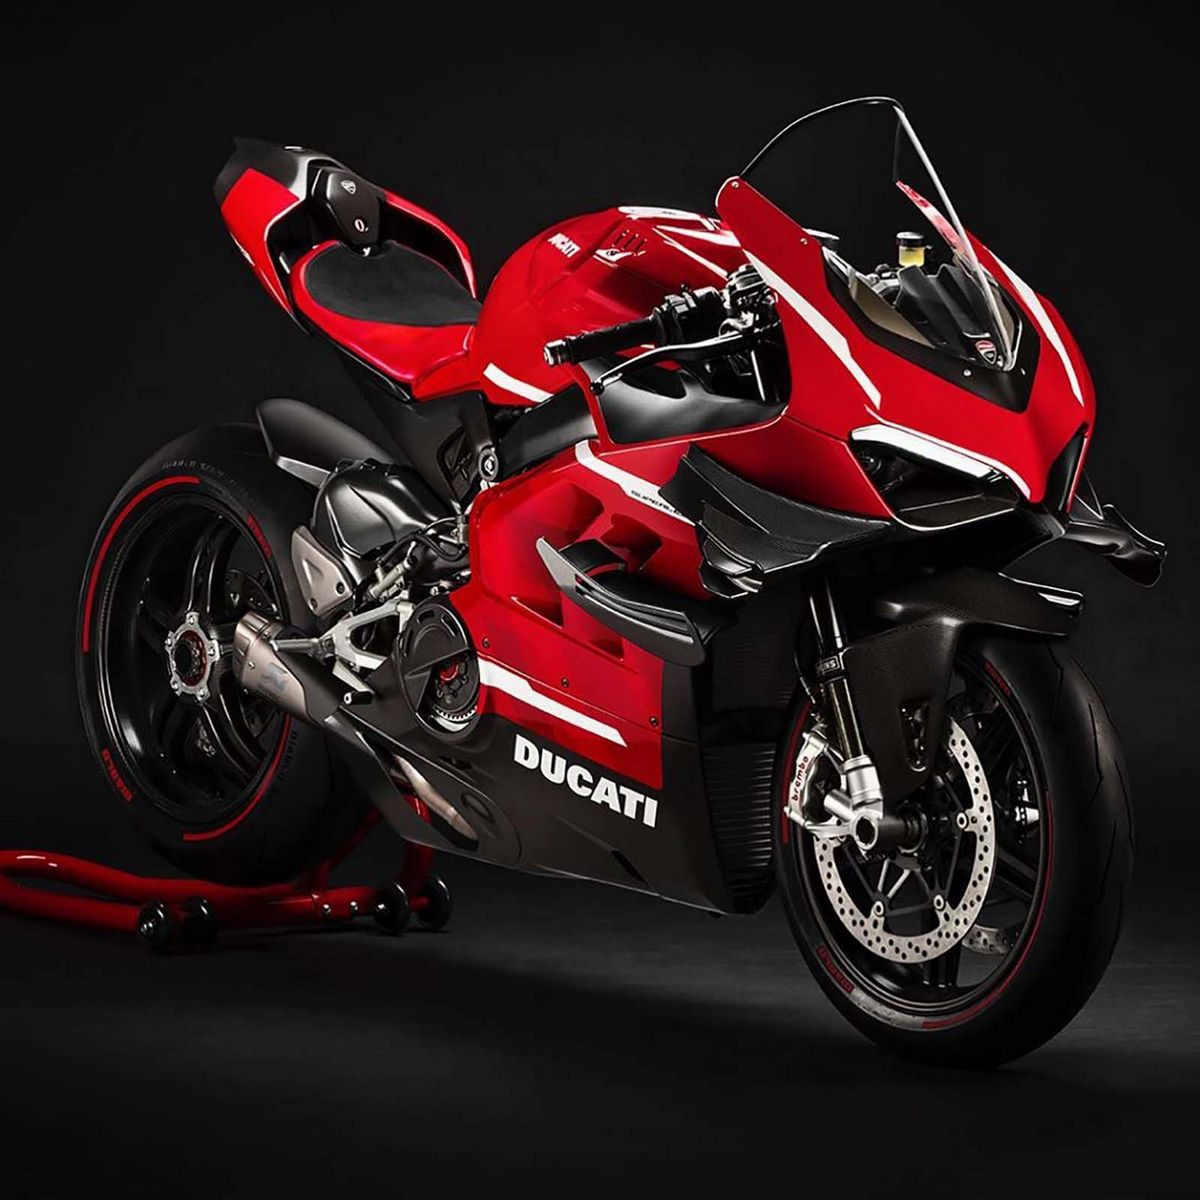 Here is why Ducati is the last word when it comes to motorcycles